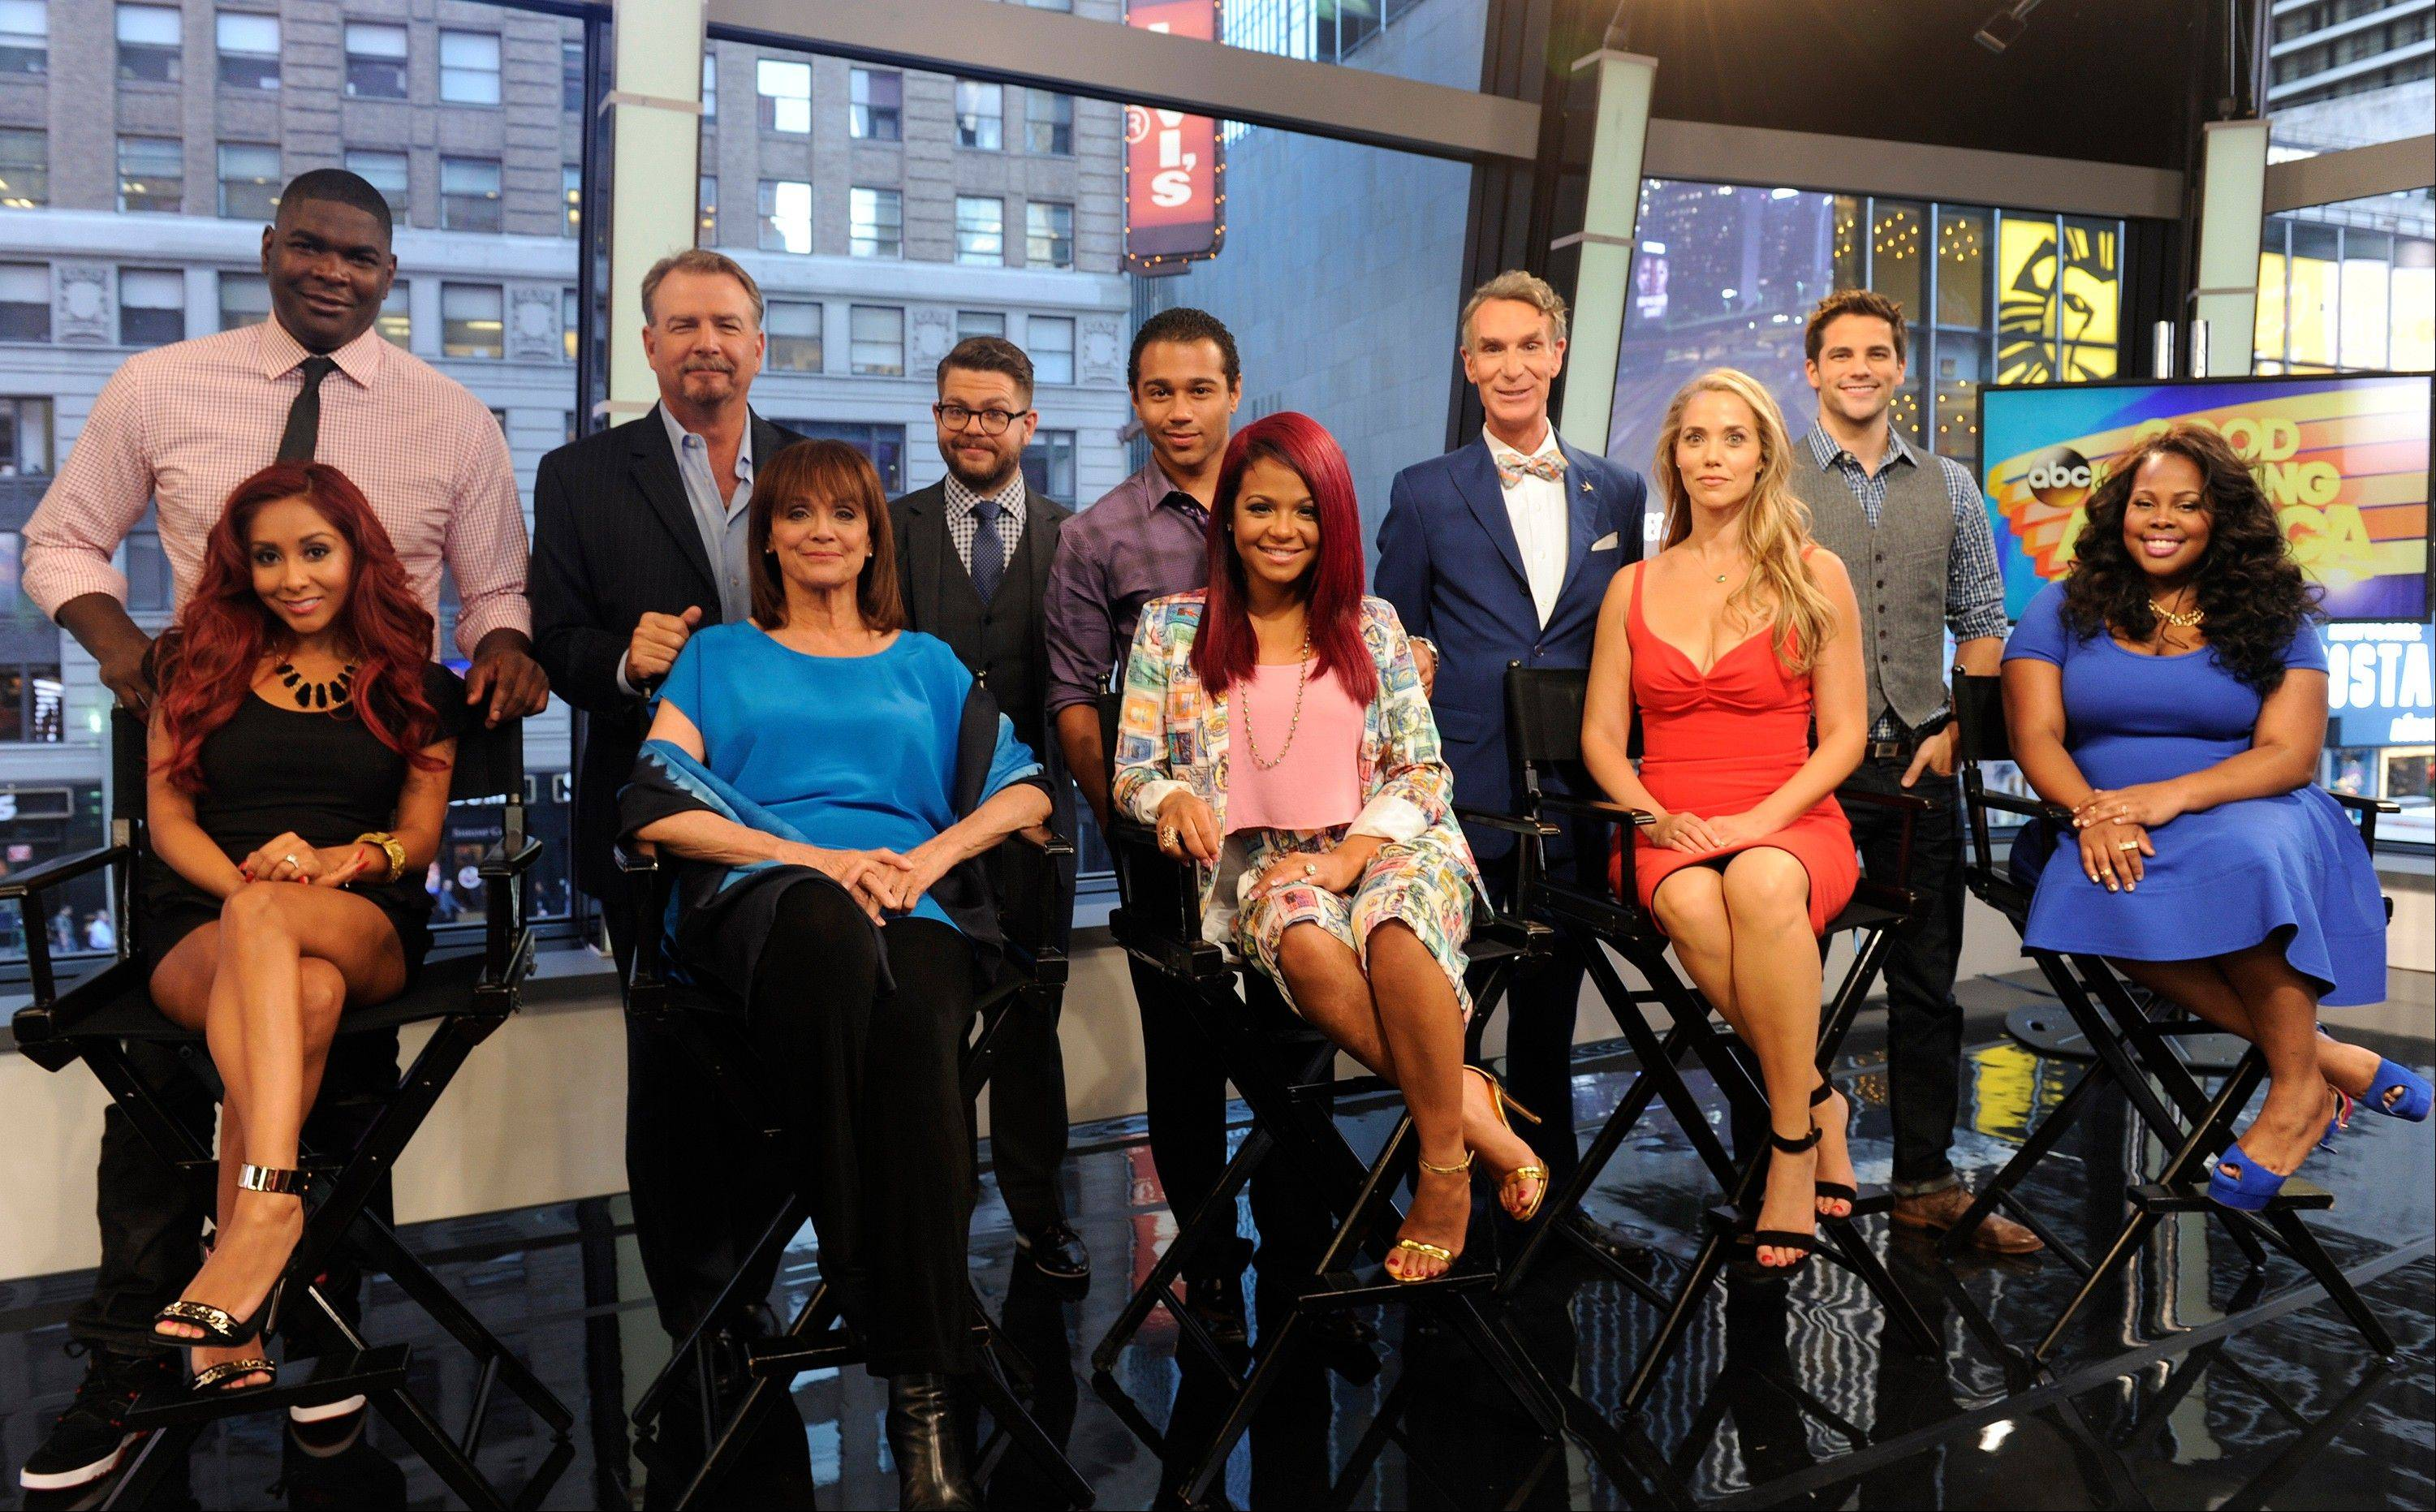 "This image released by ABC shows, standing from left, NFL wide receiver Keyshawn Johnson, comic Bill Engvall, TV personality Jack Osbourne, actor Corbin Bleu, Bill Nye, the ""Science Guy,"" actor Brant Daugherty, and seated from left, TV personality Nicole ""Snooki"" Polizzi, actress Valerie Harper, singer-actress Christina Milian, actress Elizabeth Berkley and actress Amber Riley on ""Good Morning America,"" Wednesday, Sept. 4, 2013 in New York. These 11 celebrities, along with actress Leah Remini, will be the next celebrity contestants on the dance competition series ""Dancing with the Stars,"" premiering Sept. 16. (AP Photo/ABC, Ida Mae Astute)"